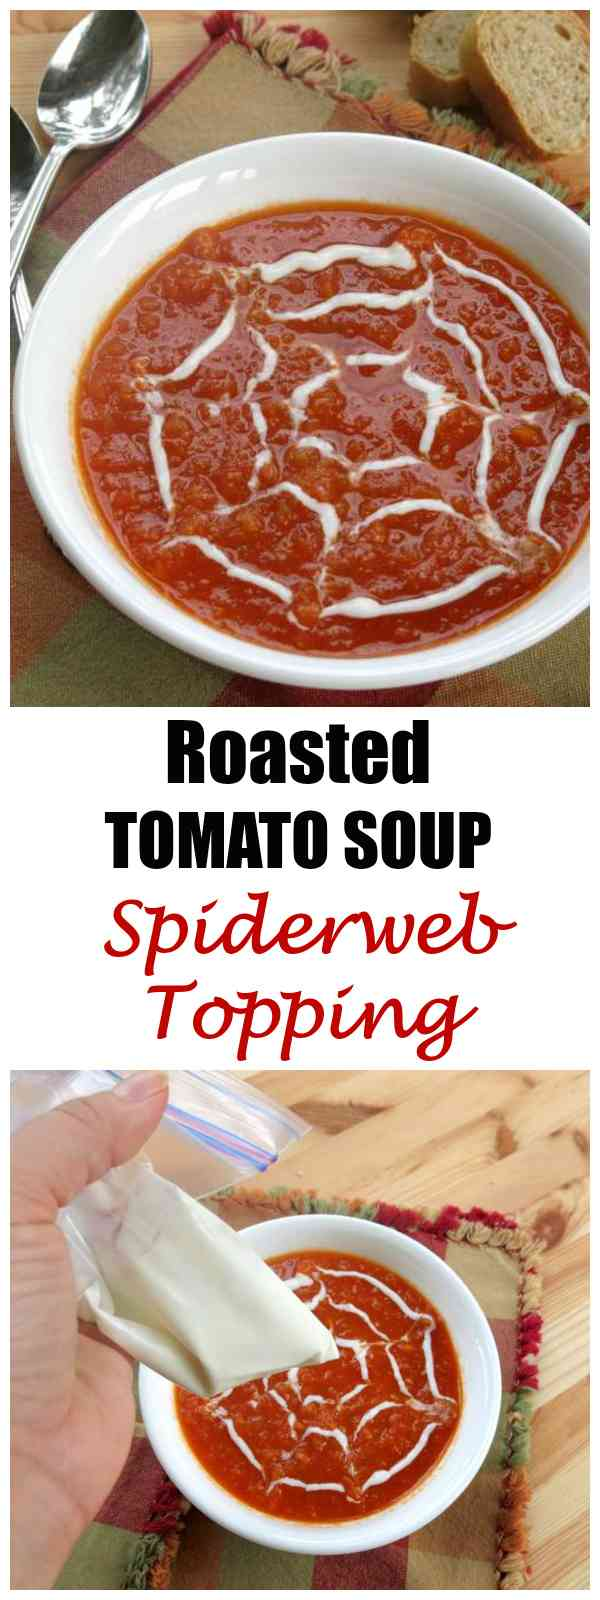 Roasted Tomato Soup Spiderweb Topping Recipe